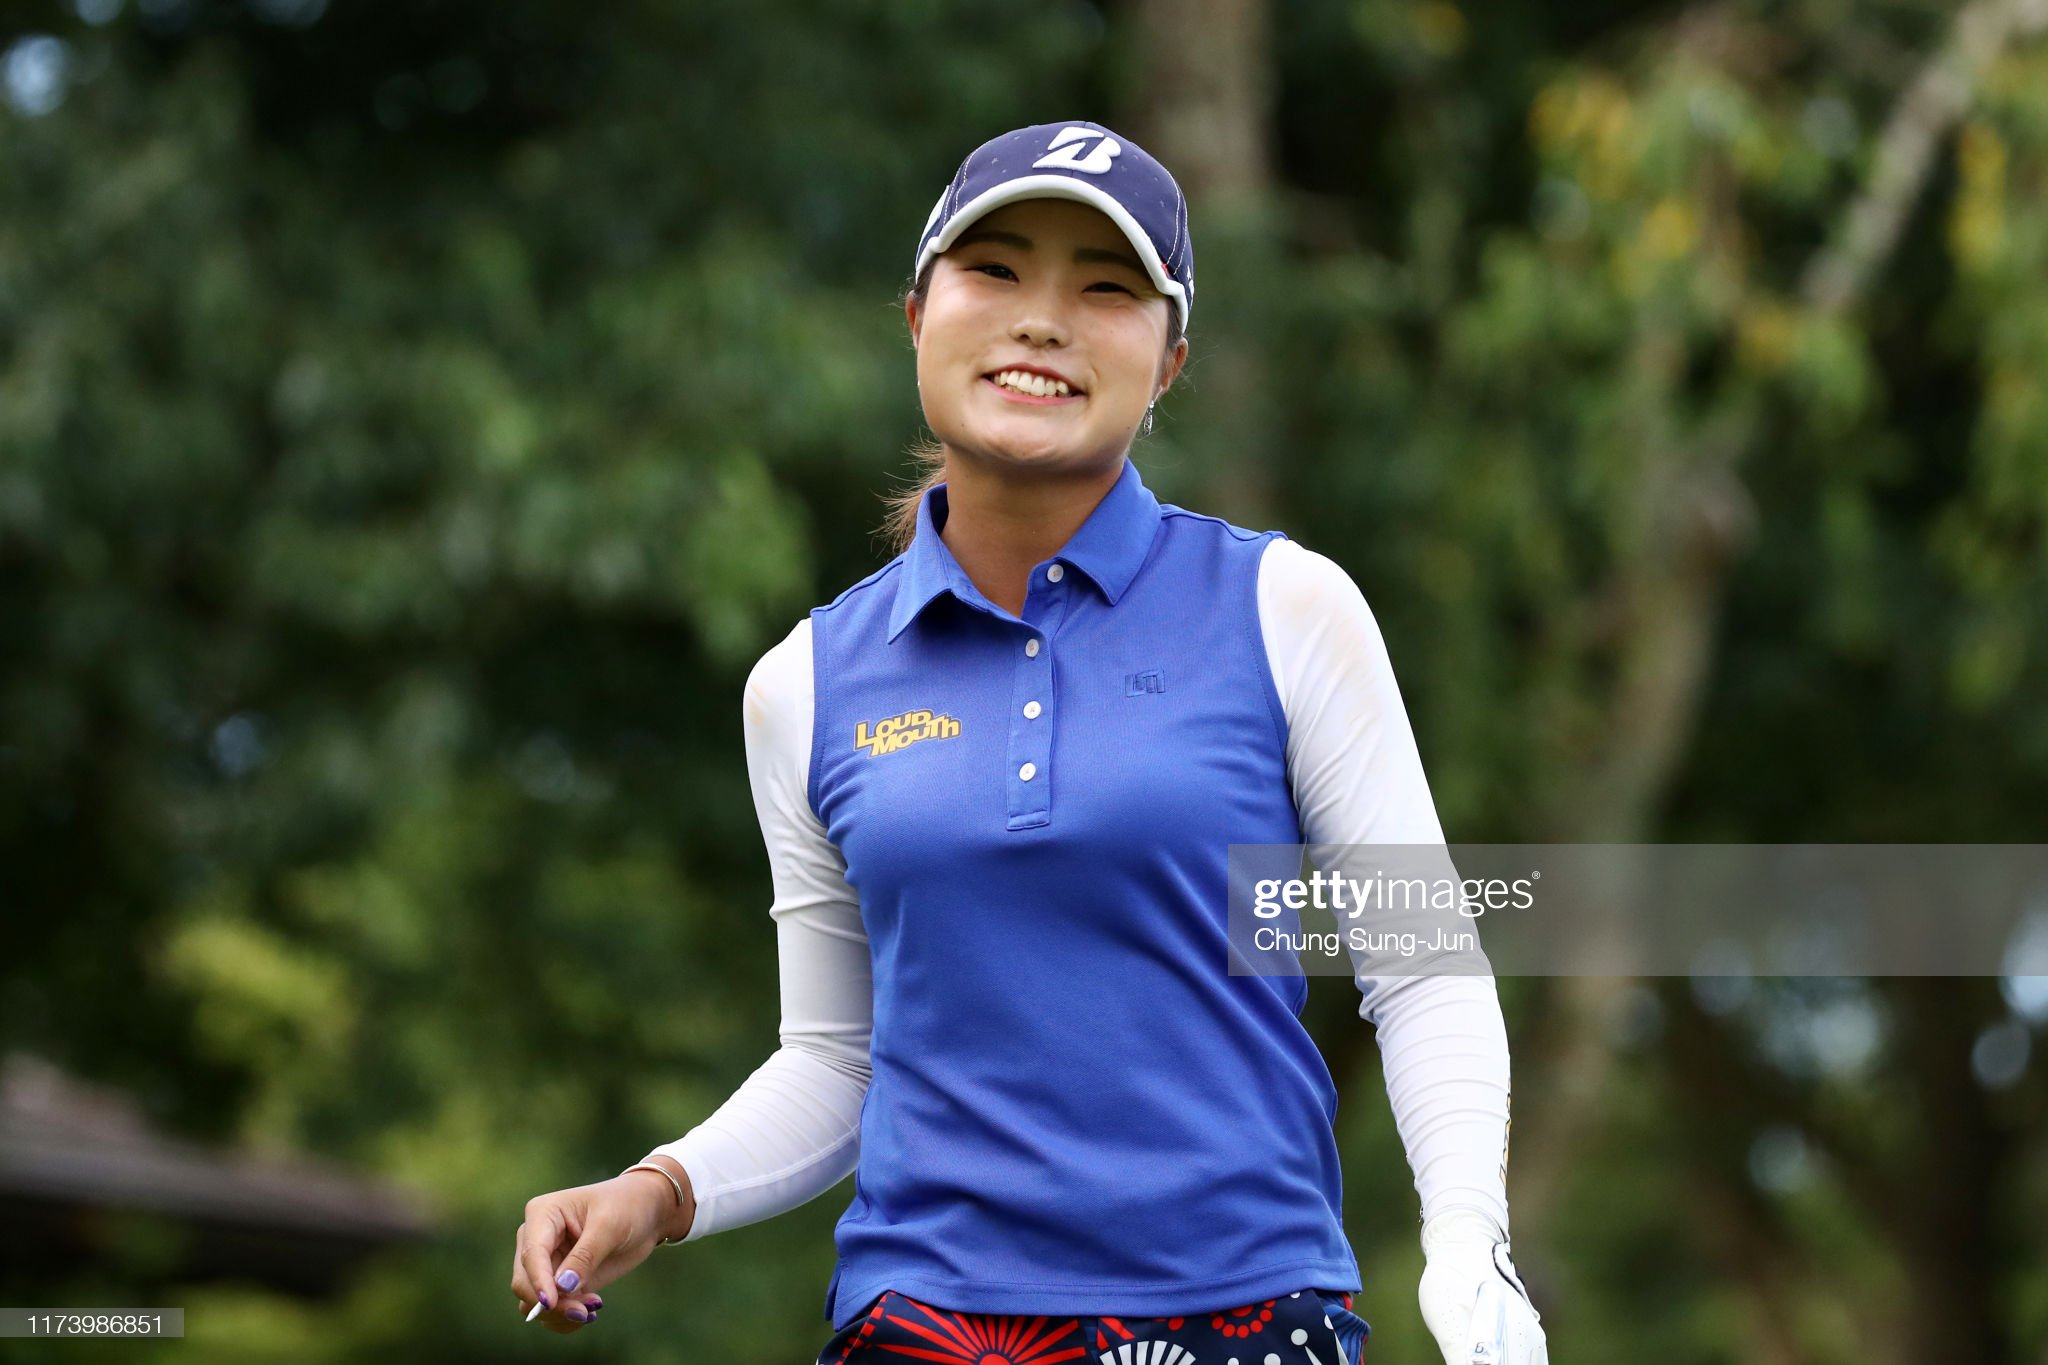 https://media.gettyimages.com/photos/sayaka-takahashi-of-japan-smiles-after-her-tee-shot-on-the-2nd-hole-picture-id1173986851?s=2048x2048